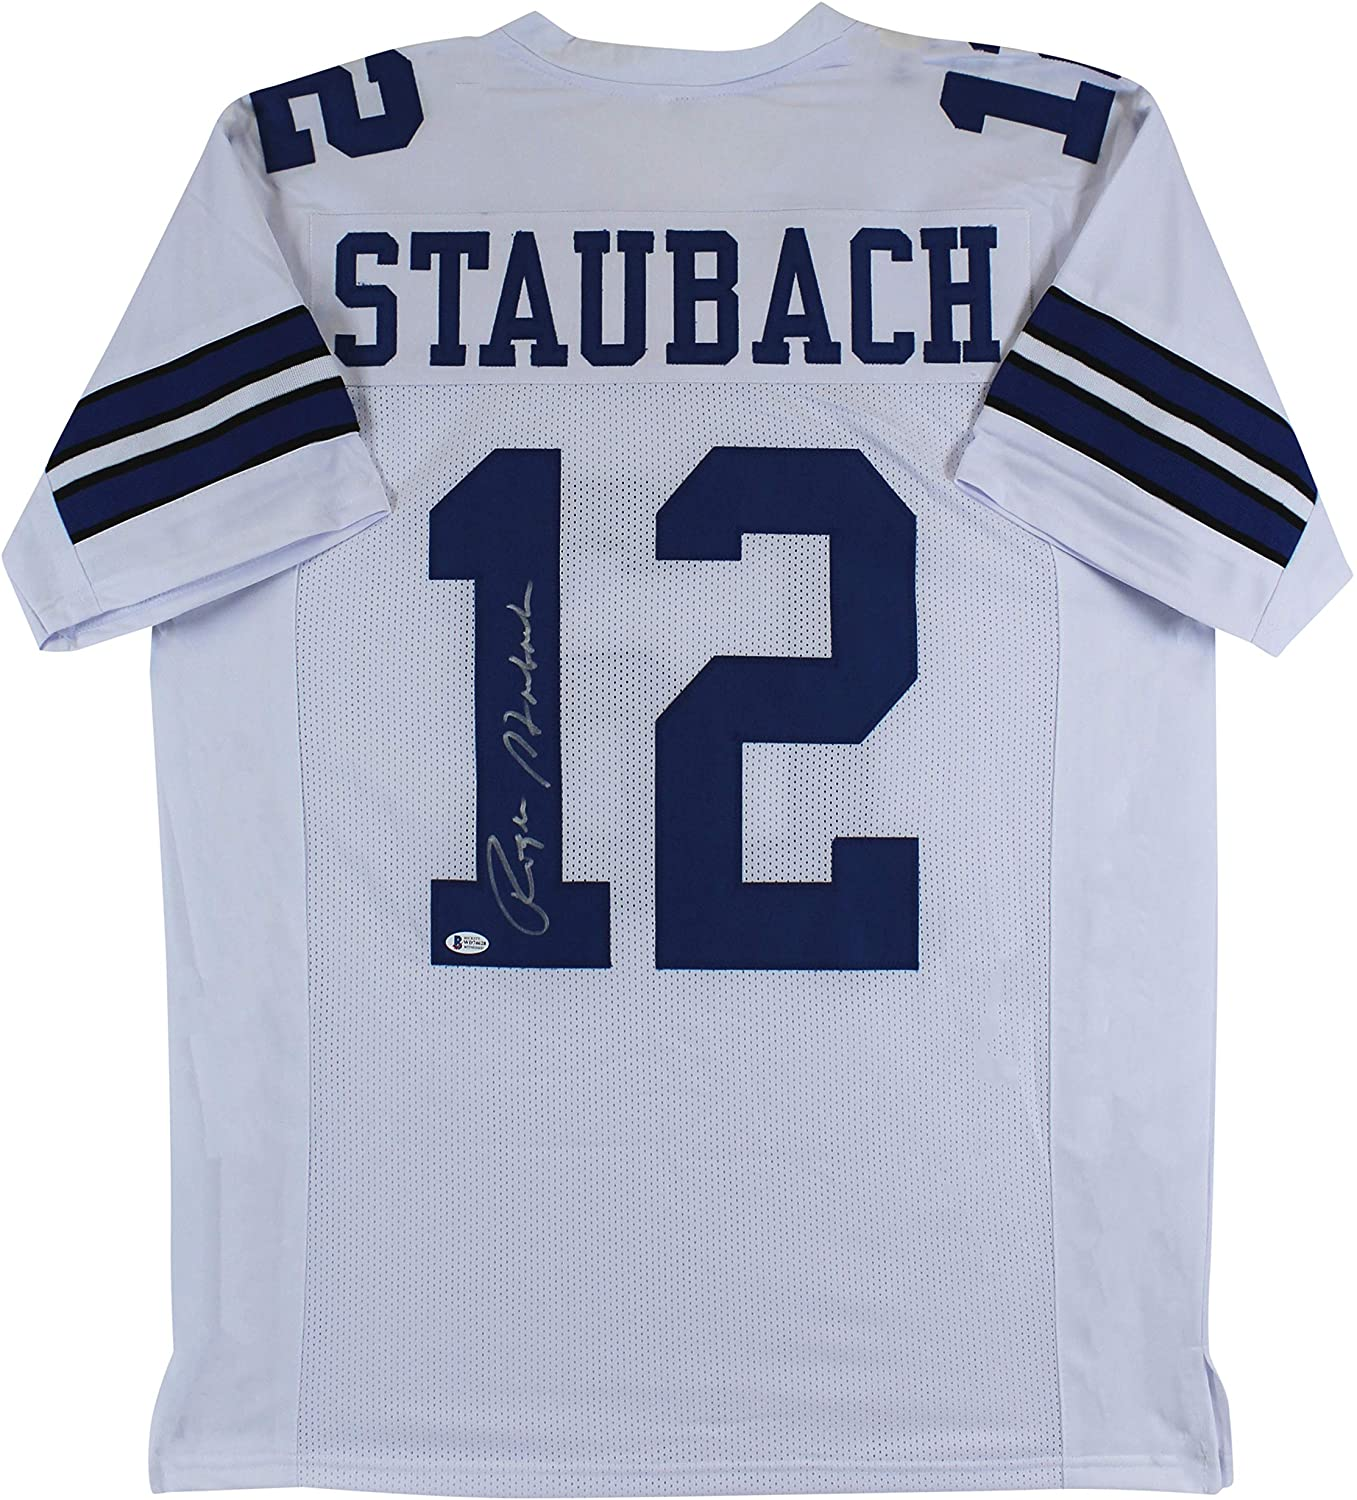 Your Jersey, Football or Helmet - Signed by Roger Staubach of the Dallas Cowboys